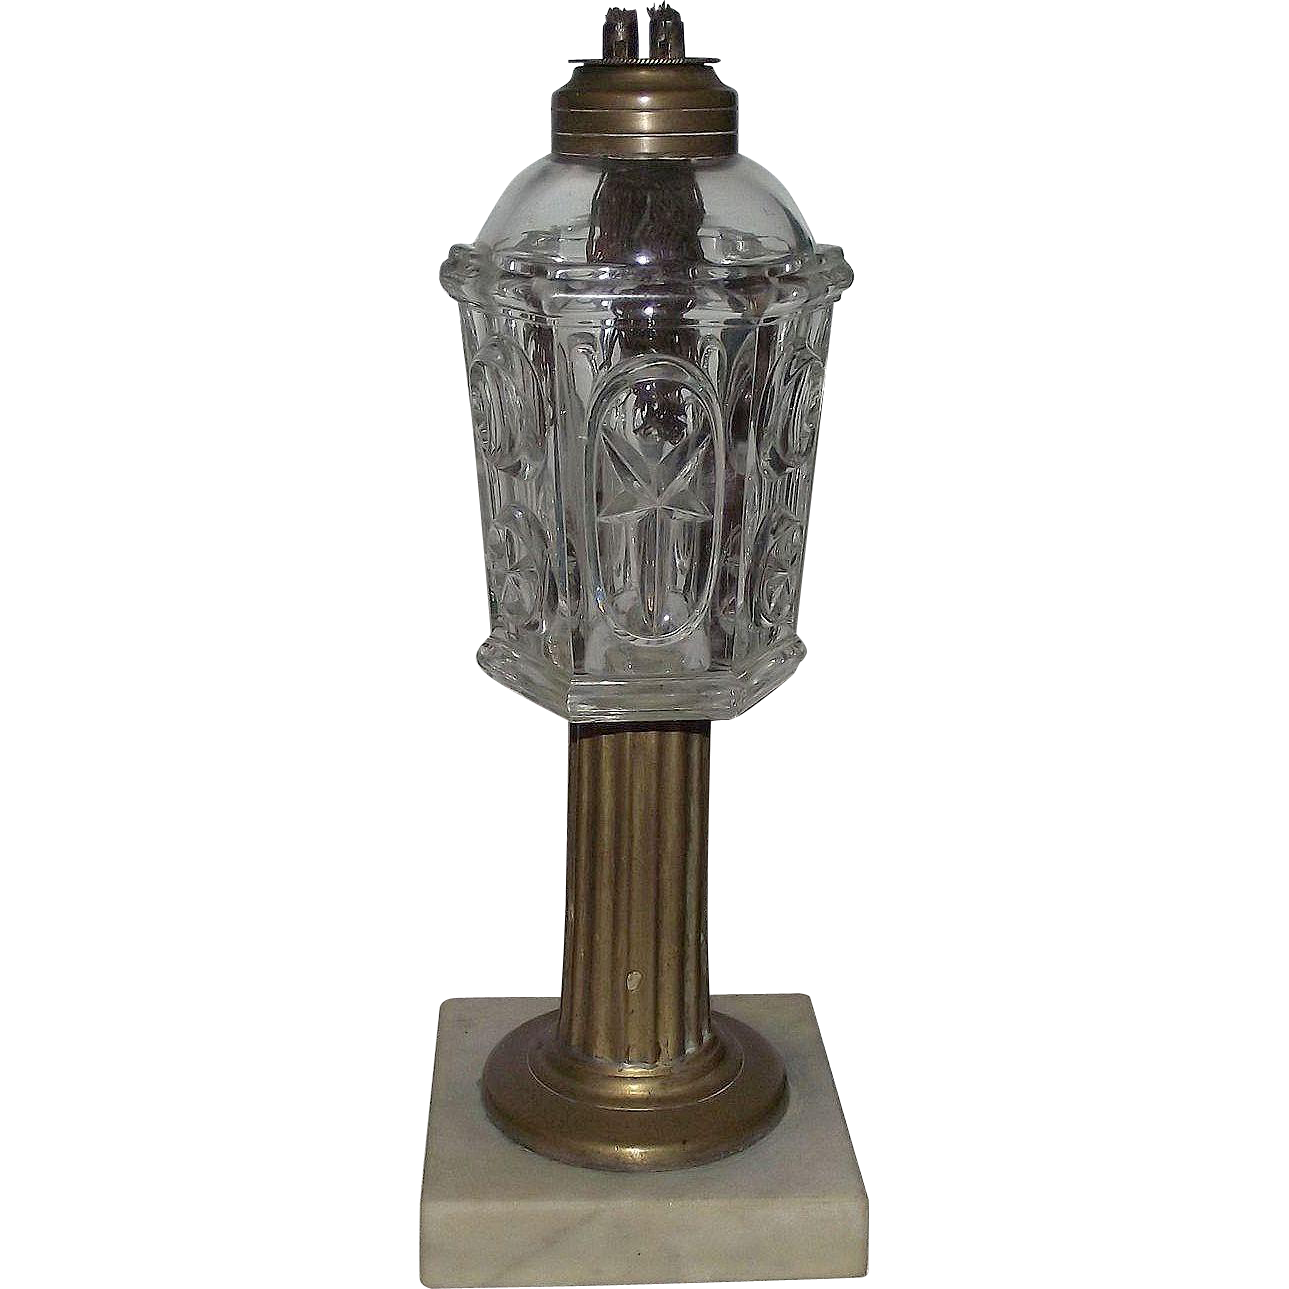 "Pre-Civil War Period ""Starburst * Comet"" Pattern Early Fluid Lamp with twin Tube Whale Oil Burner Circa 1850 to 1860 !!!"